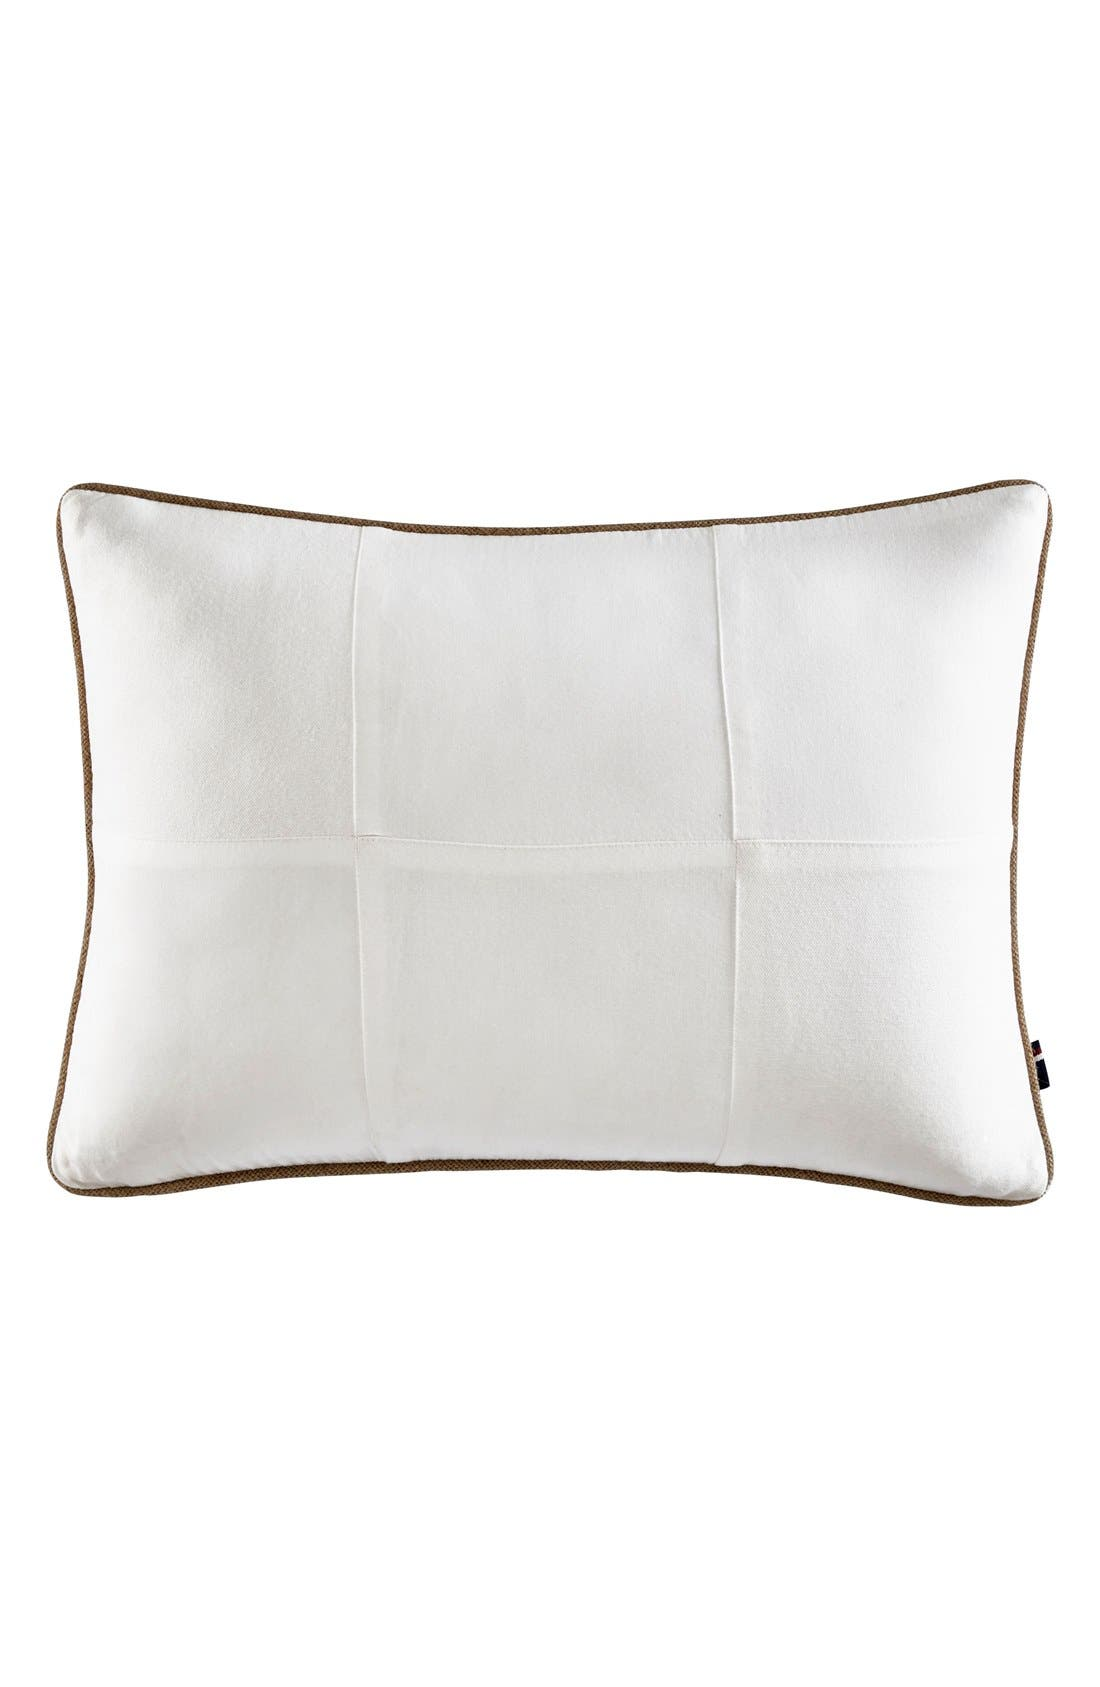 Alternate Image 1 Selected - Tommy Hilfiger Longview Accent Pillow